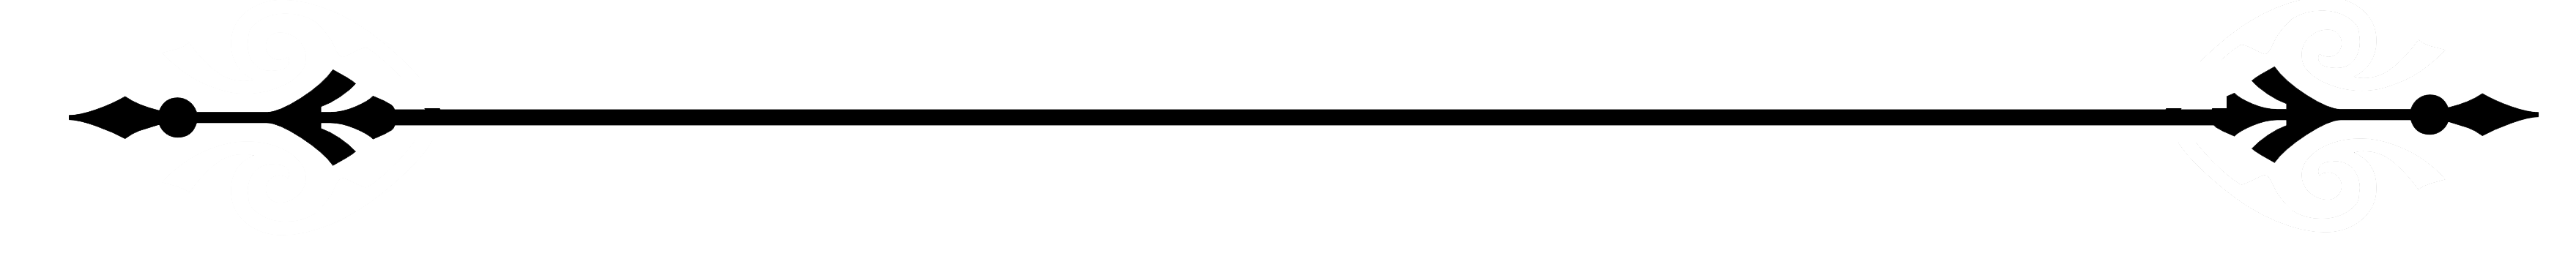 bell-png-divider-1.png